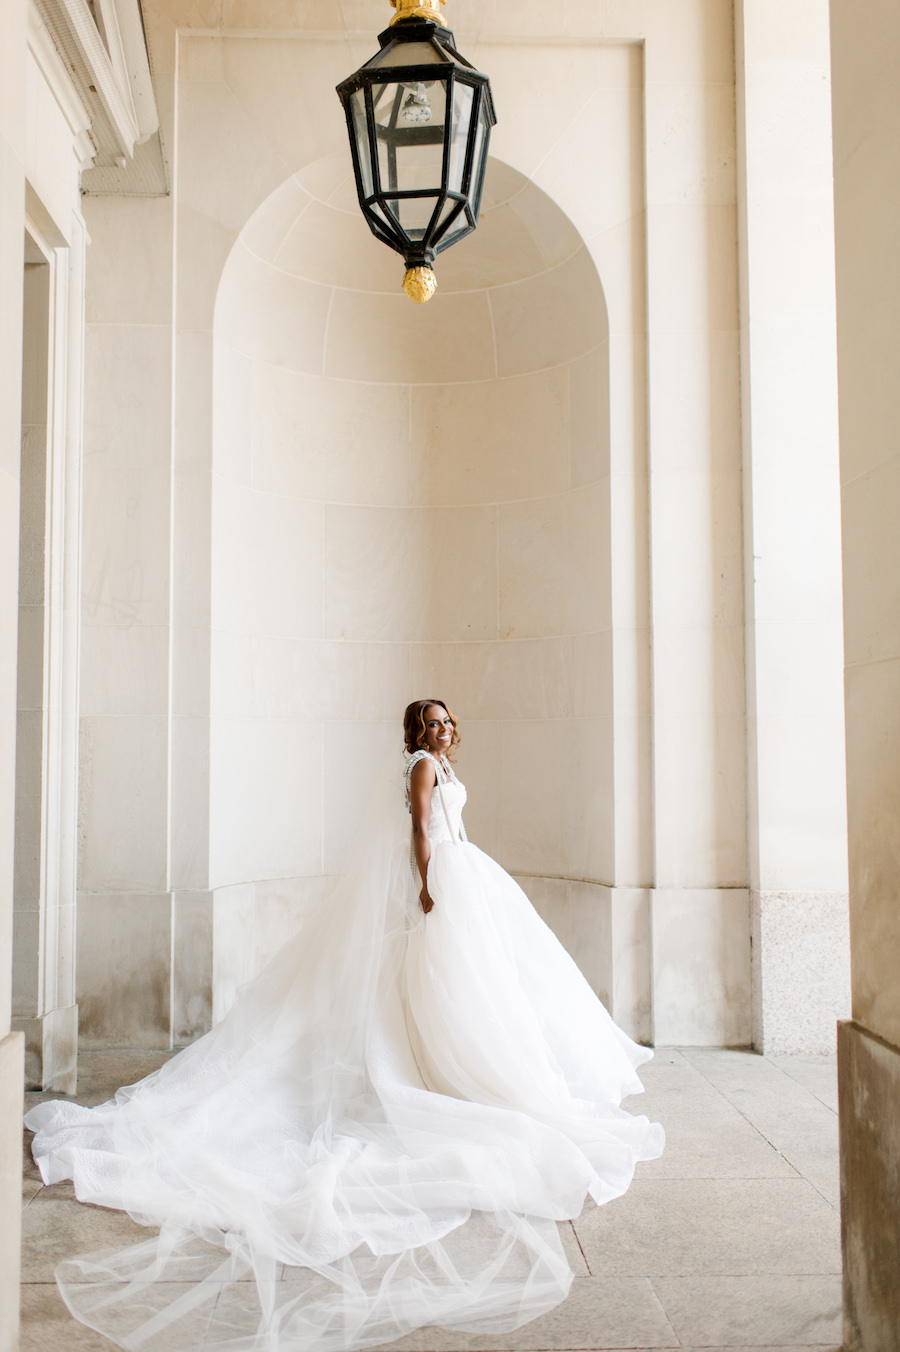 Glamorous Gold Mirror Washington DC Wedding at the Andrew Mellon Auditorium